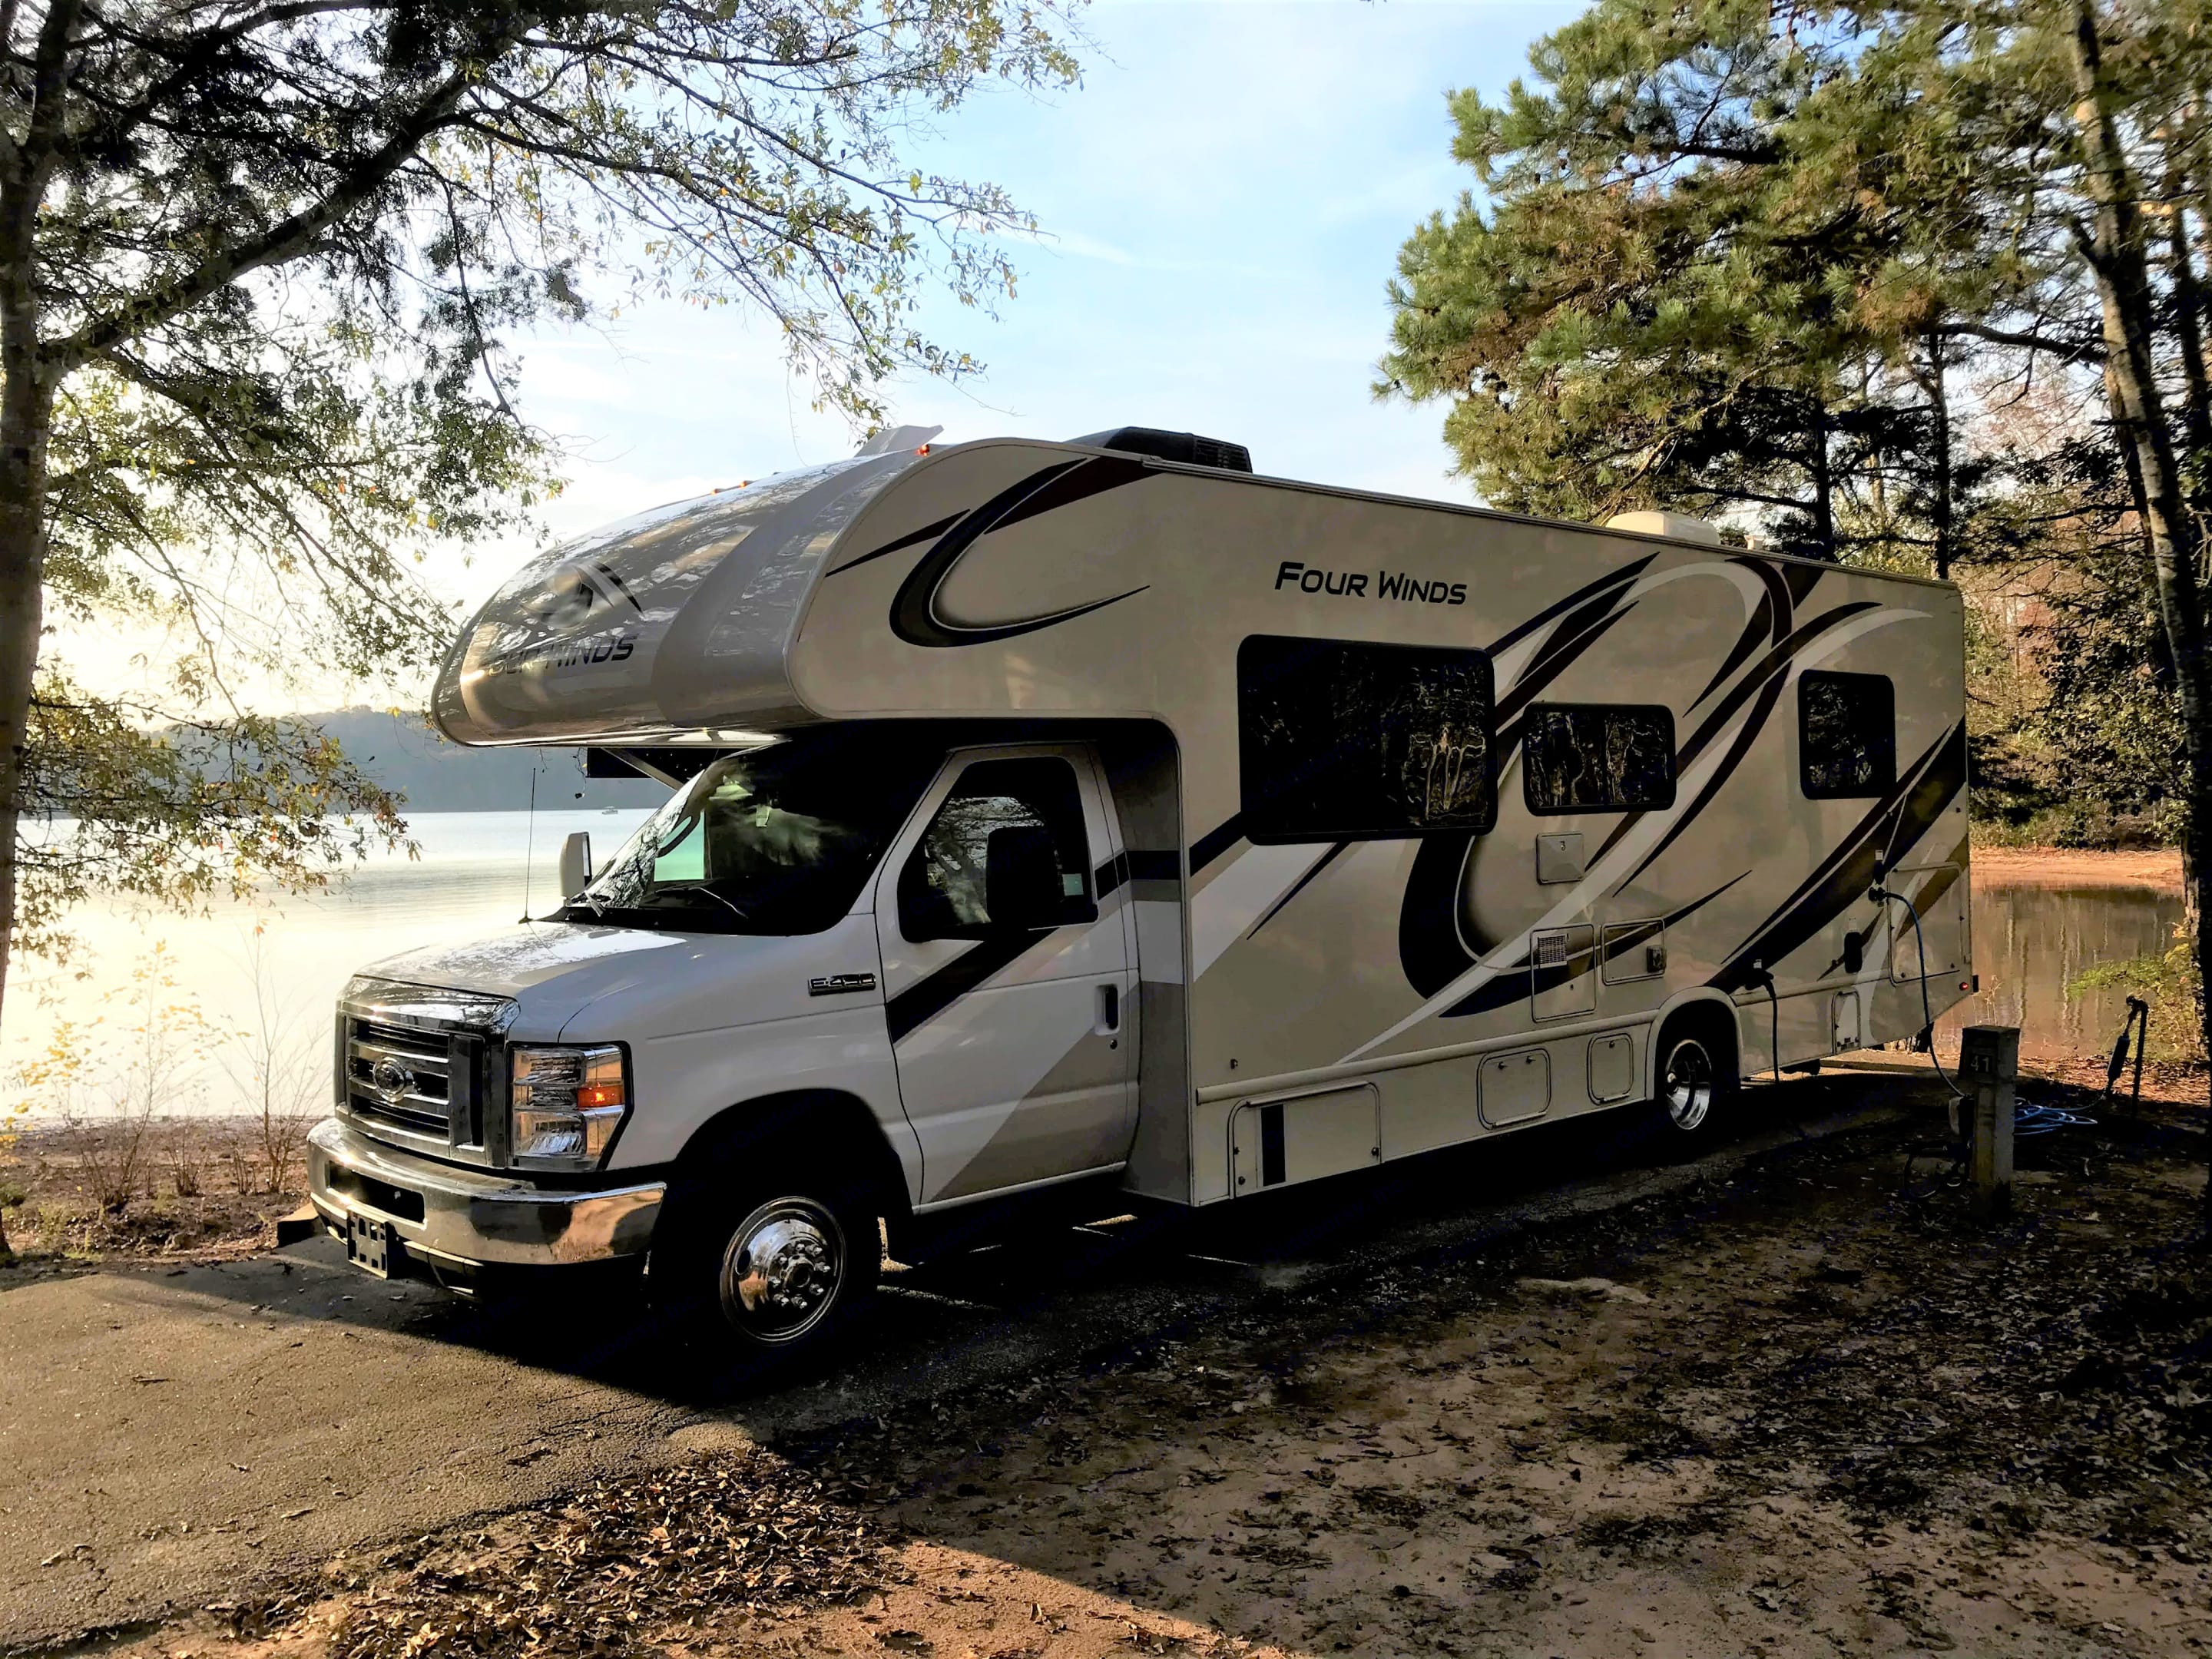 Beautiful and clean, Class C motorhome will get your family down the road and camping in style!. Thor Motor Coach Four Winds 2020